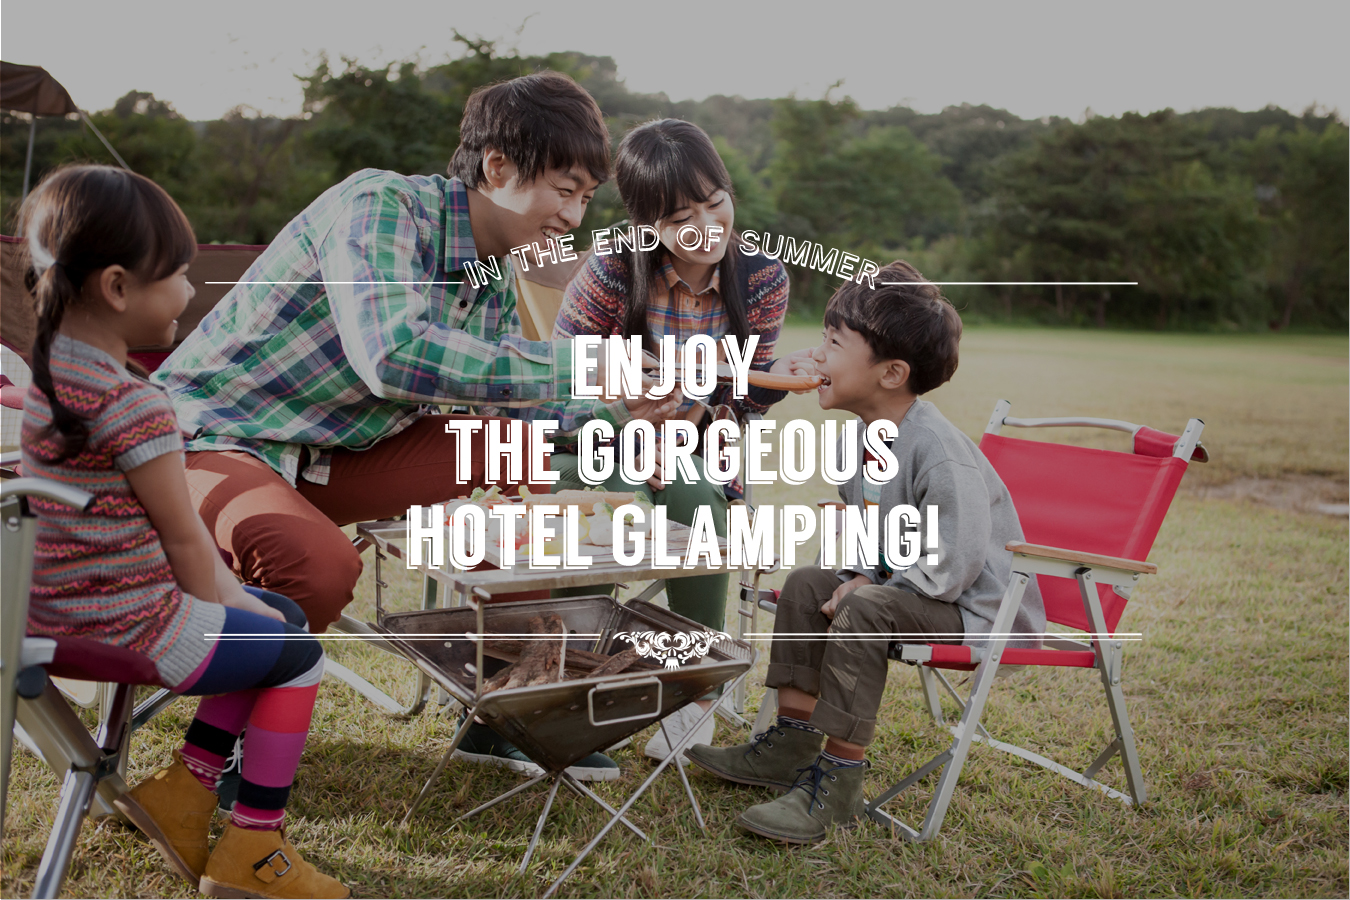 Enjoy the gorgeous hotel glamping in the end of the summer!